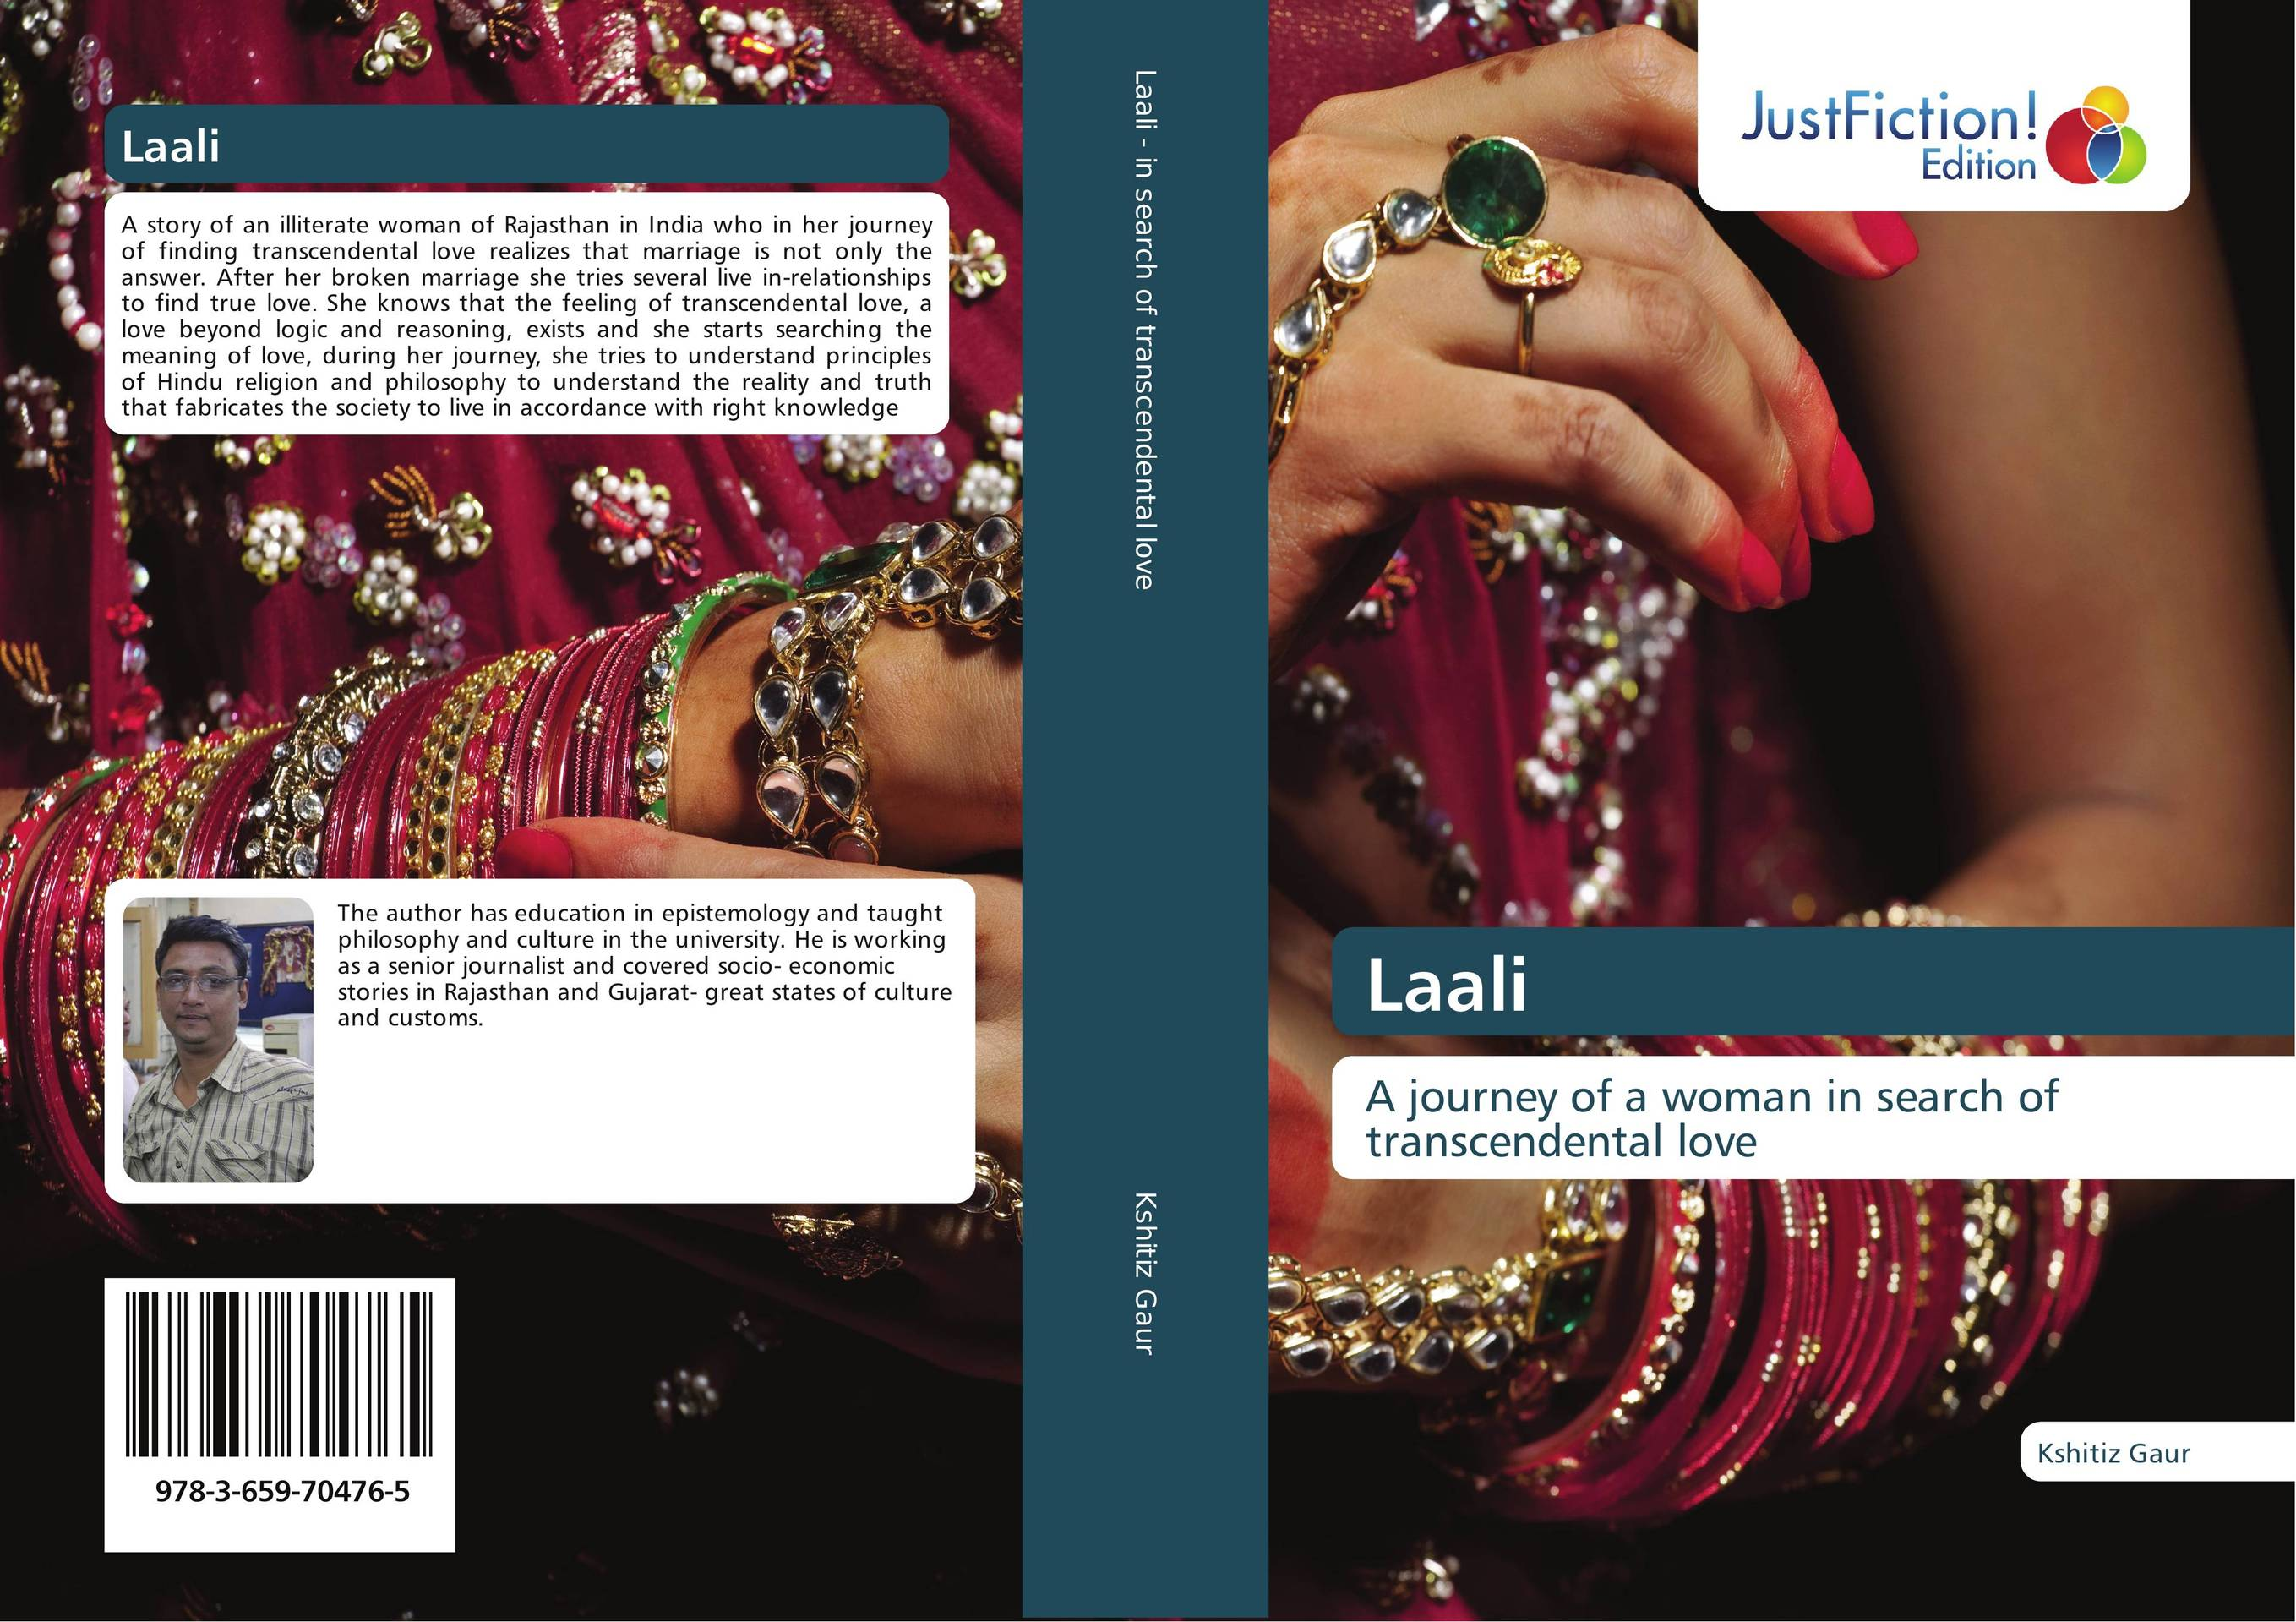 Laali love and marriage in the middle ages